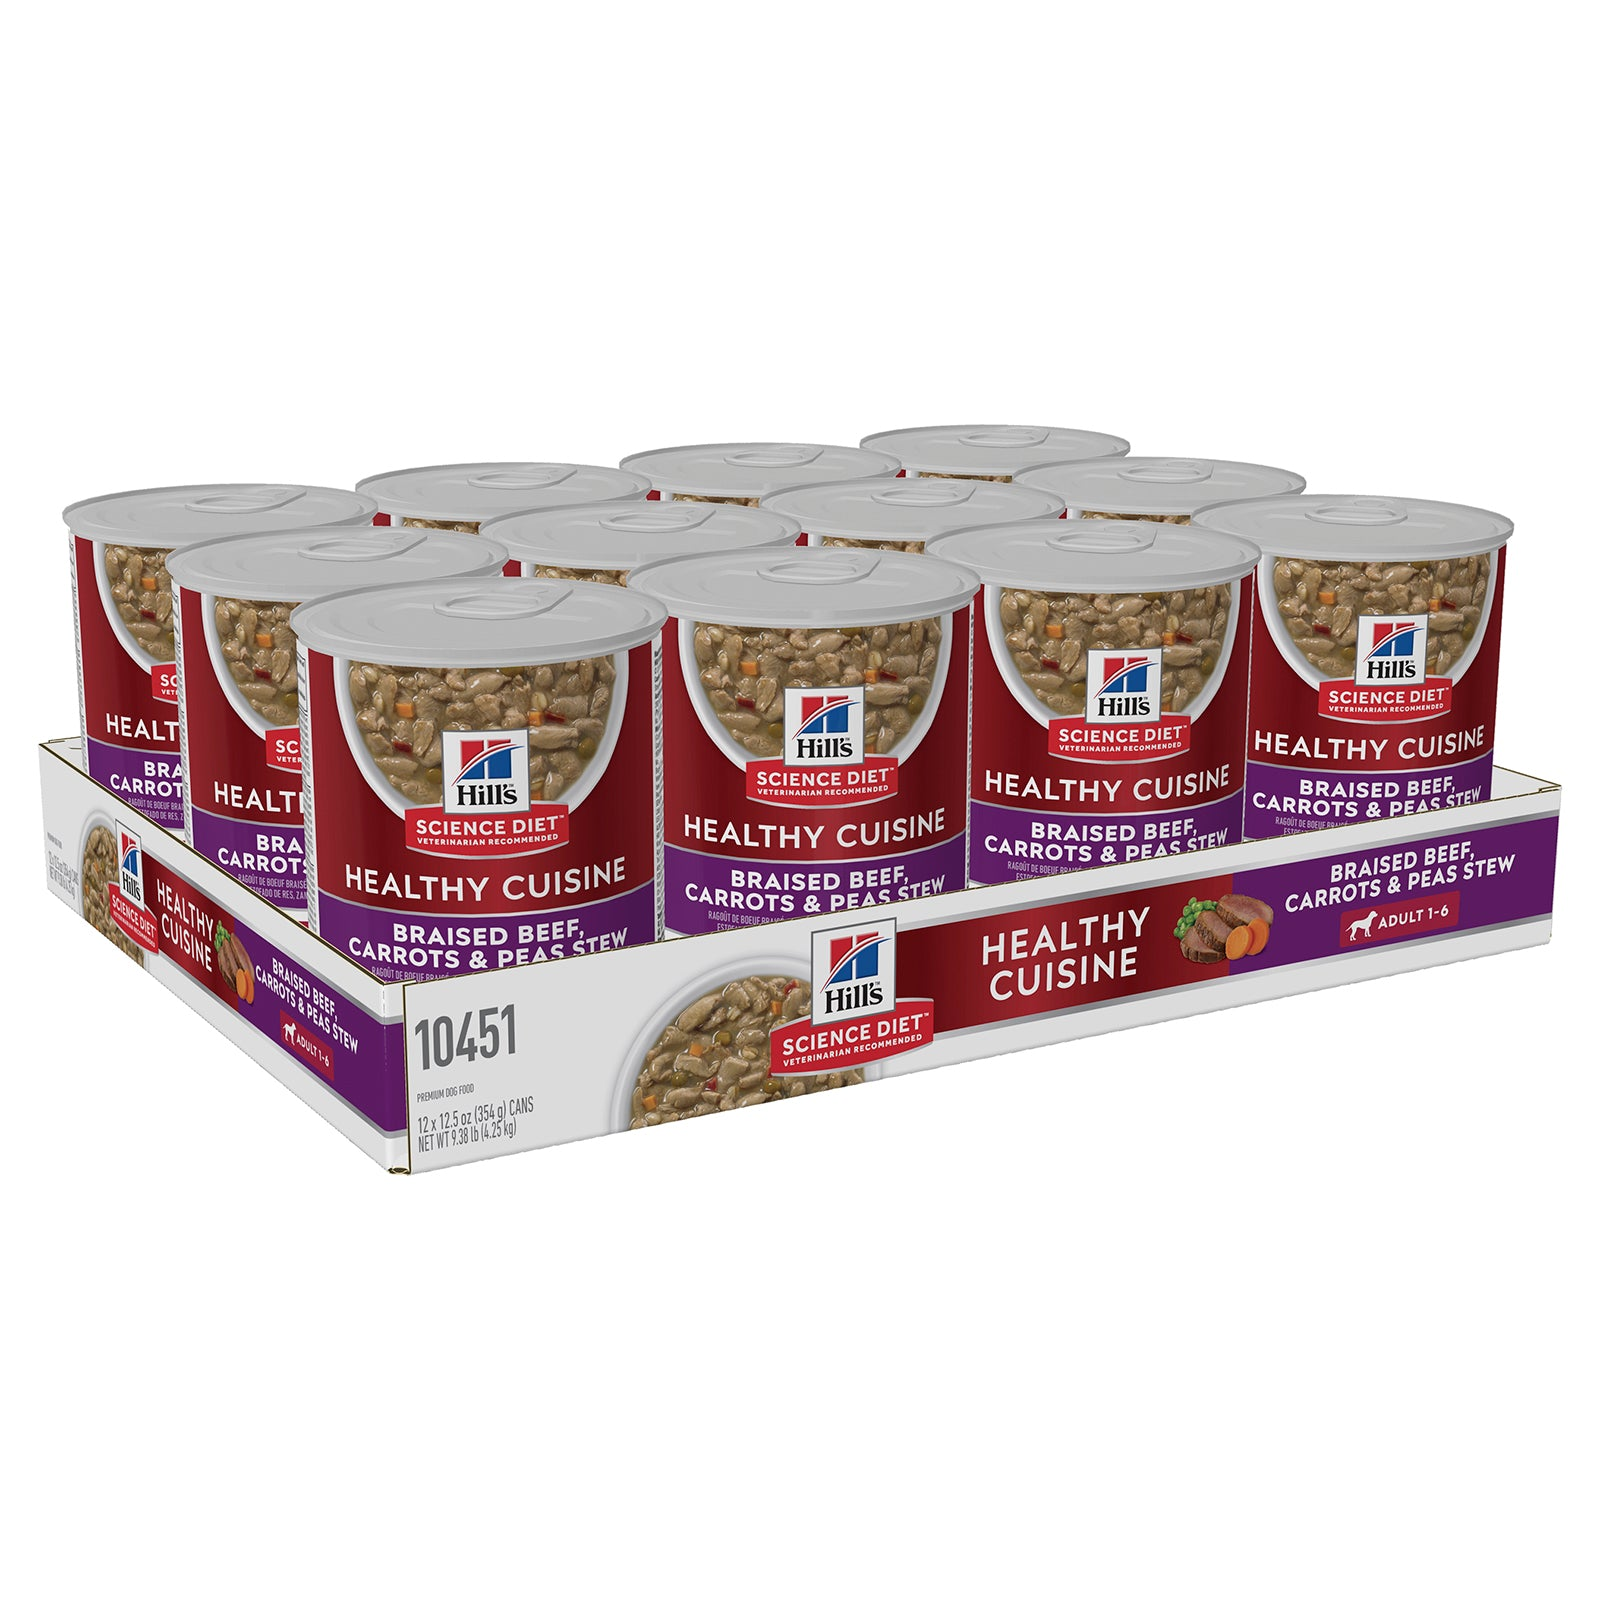 Hills Dog Food Can Adult Healthy Cuisine Braised Beef, Carrots & Peas Stew